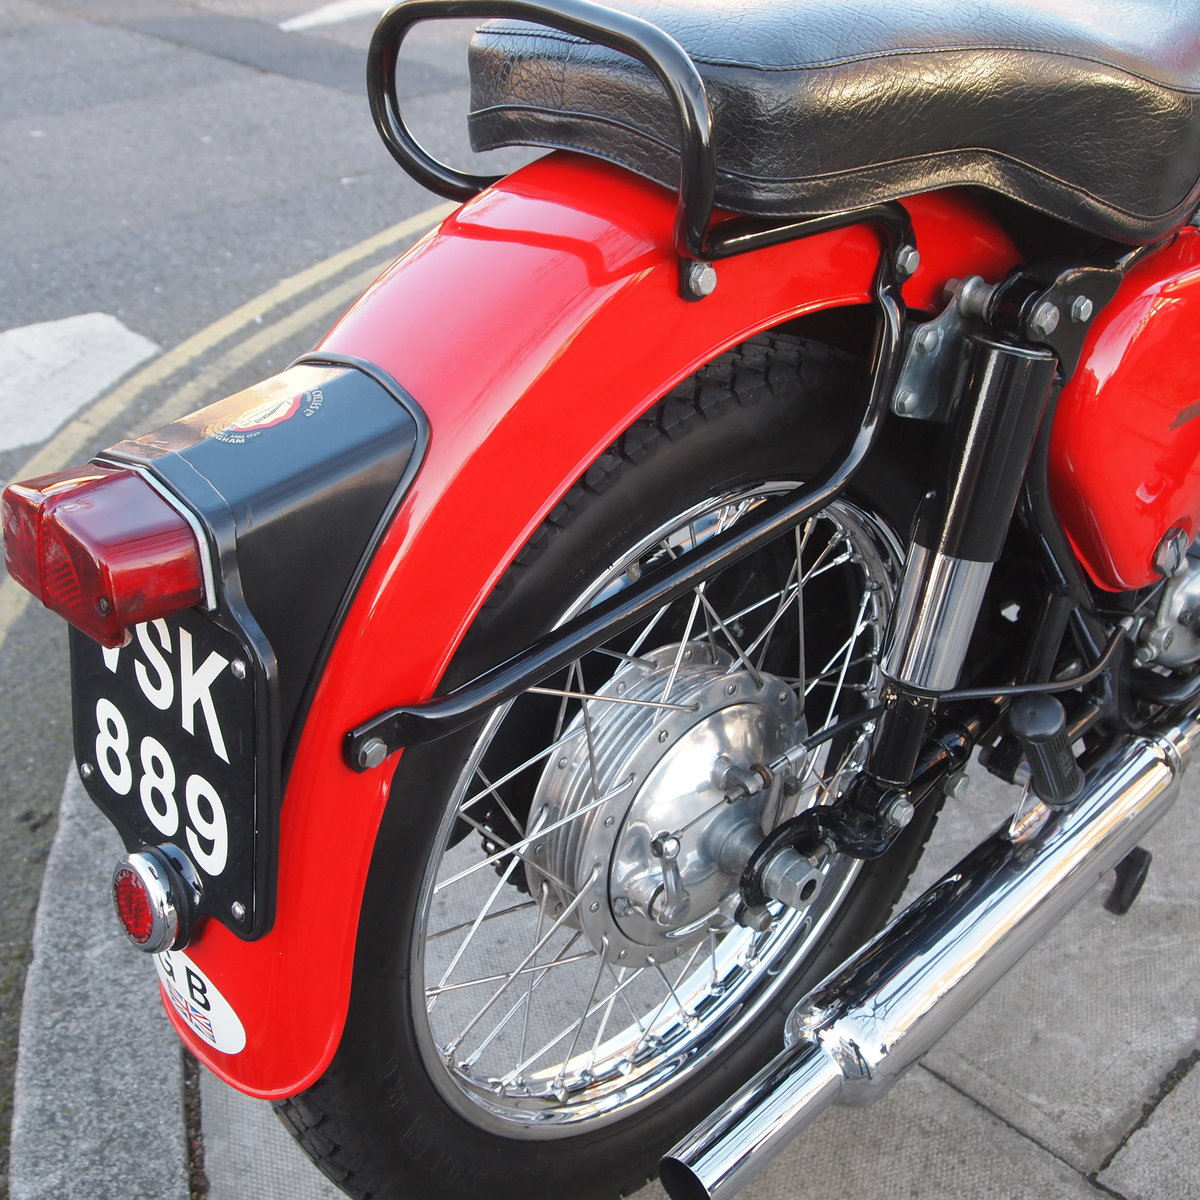 1956 BSA B33 500cc 'In Lovely Condition' For Sale (picture 3 of 6)